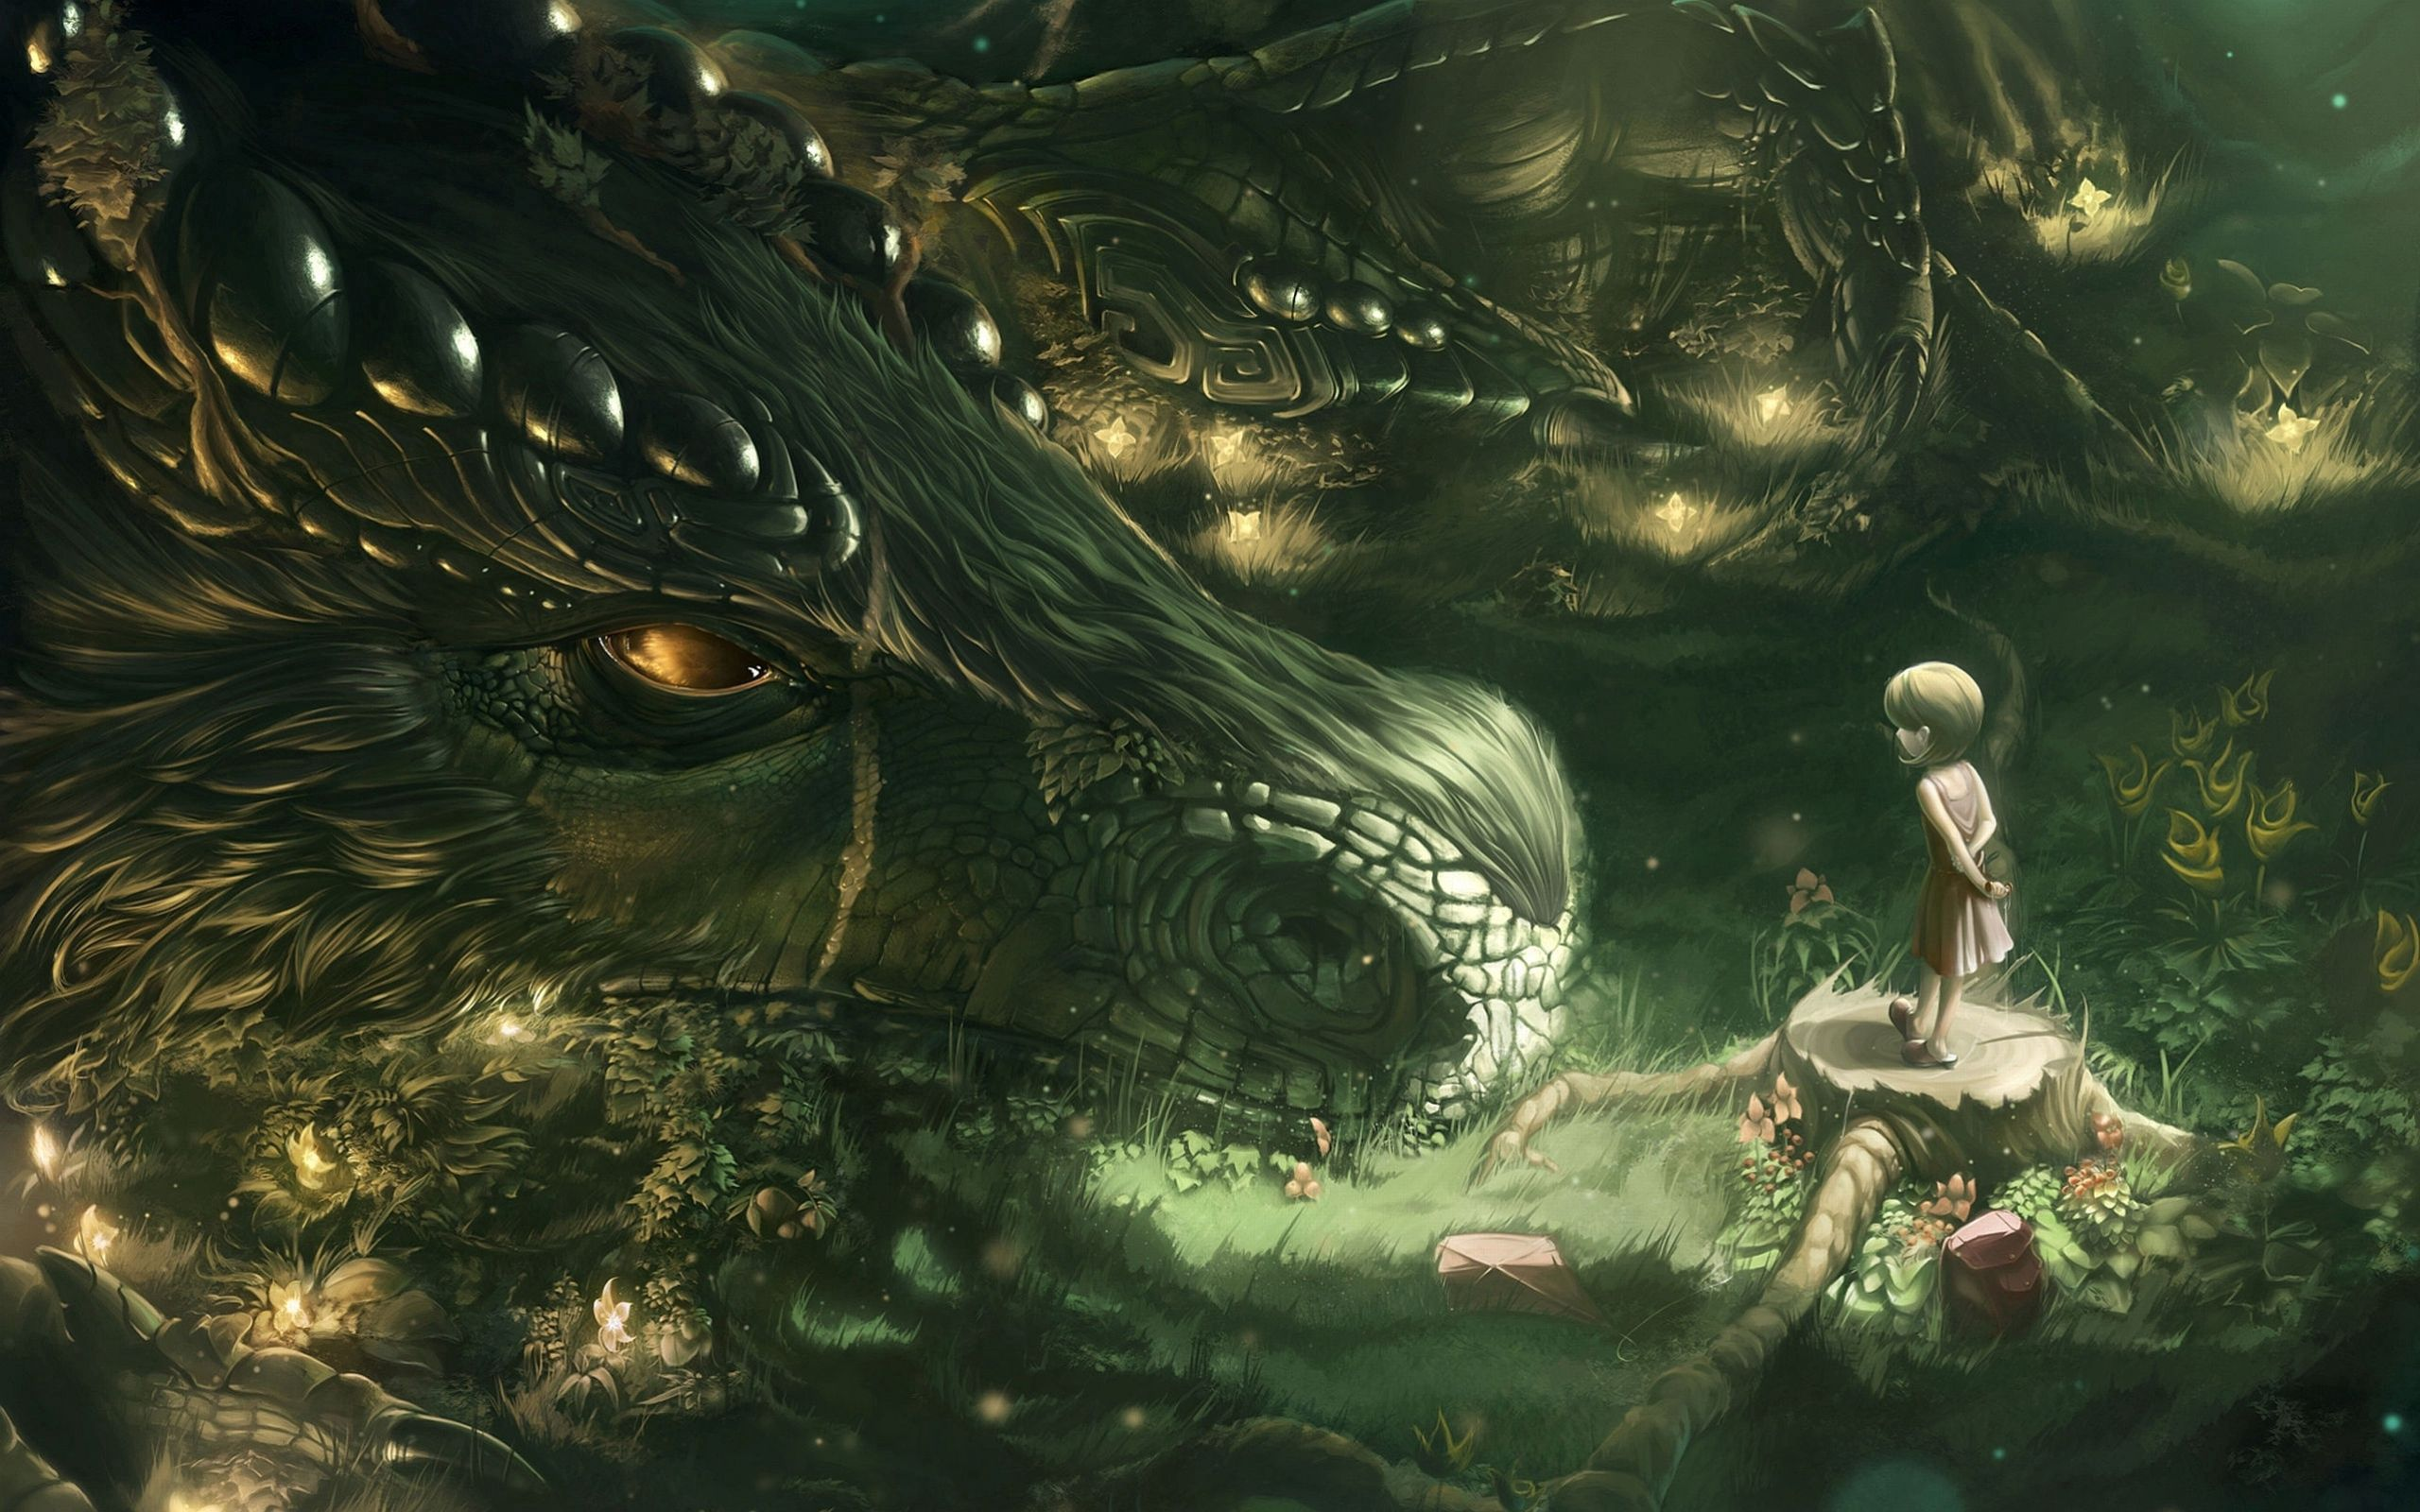 122683 download wallpaper Fantasy, Girl, Art, Forest, Dragon screensavers and pictures for free